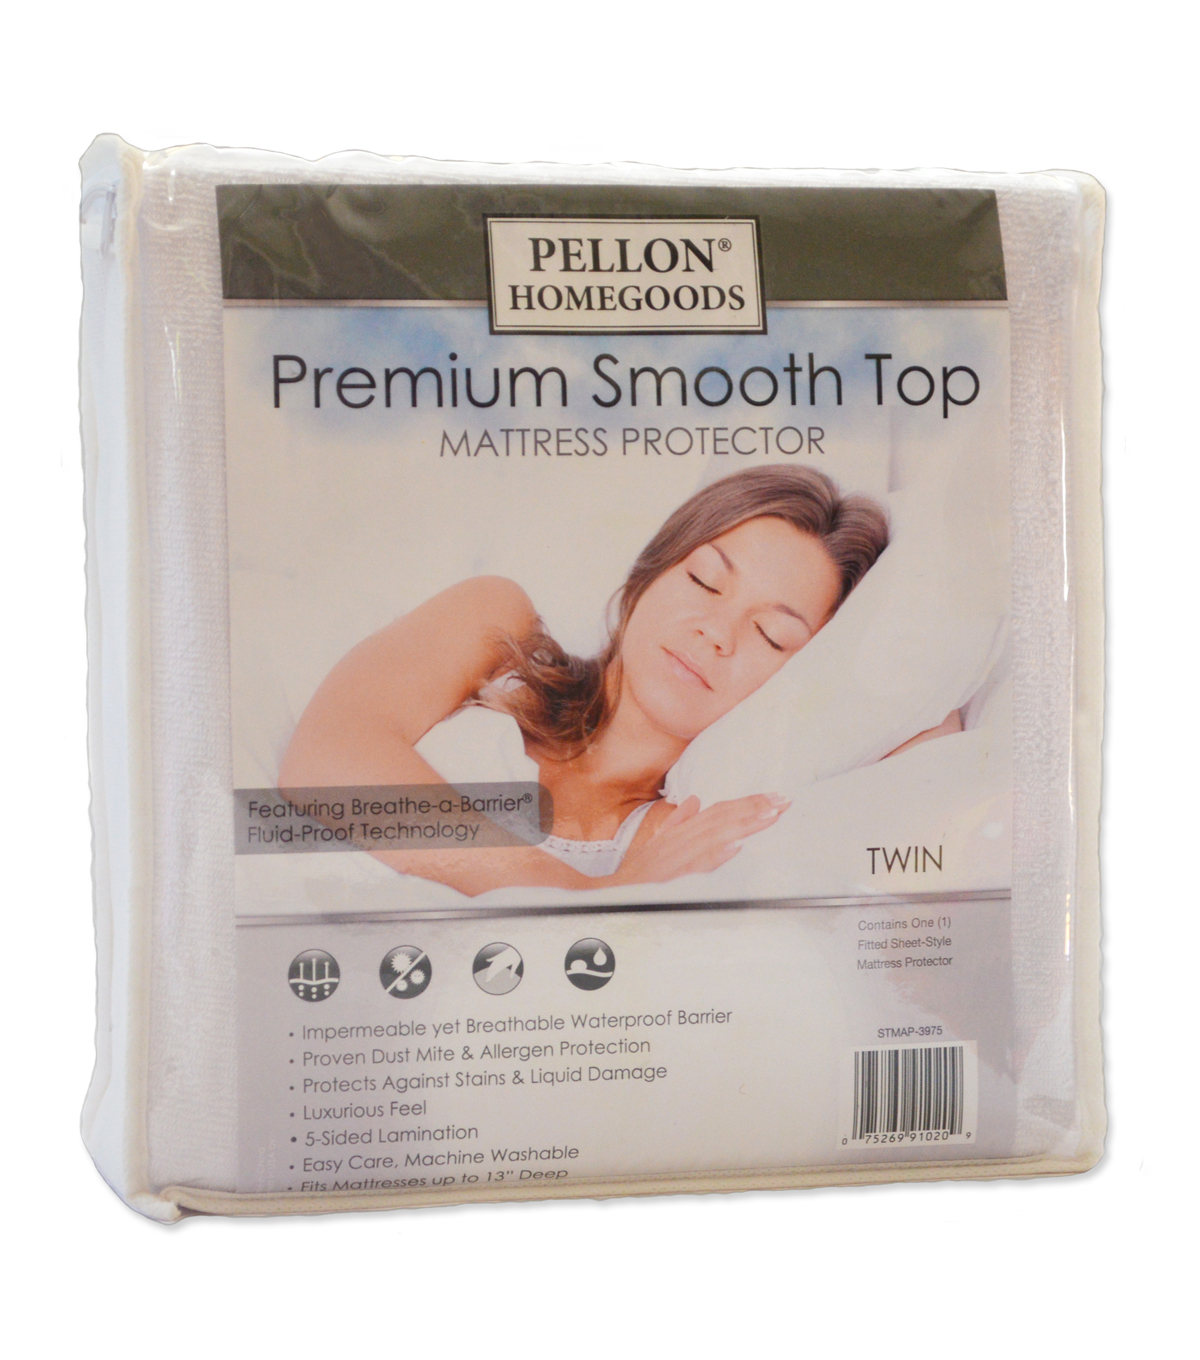 Pellon Premium Smooth Top Mattress Protector Twin 39\u0022X 75\u0022